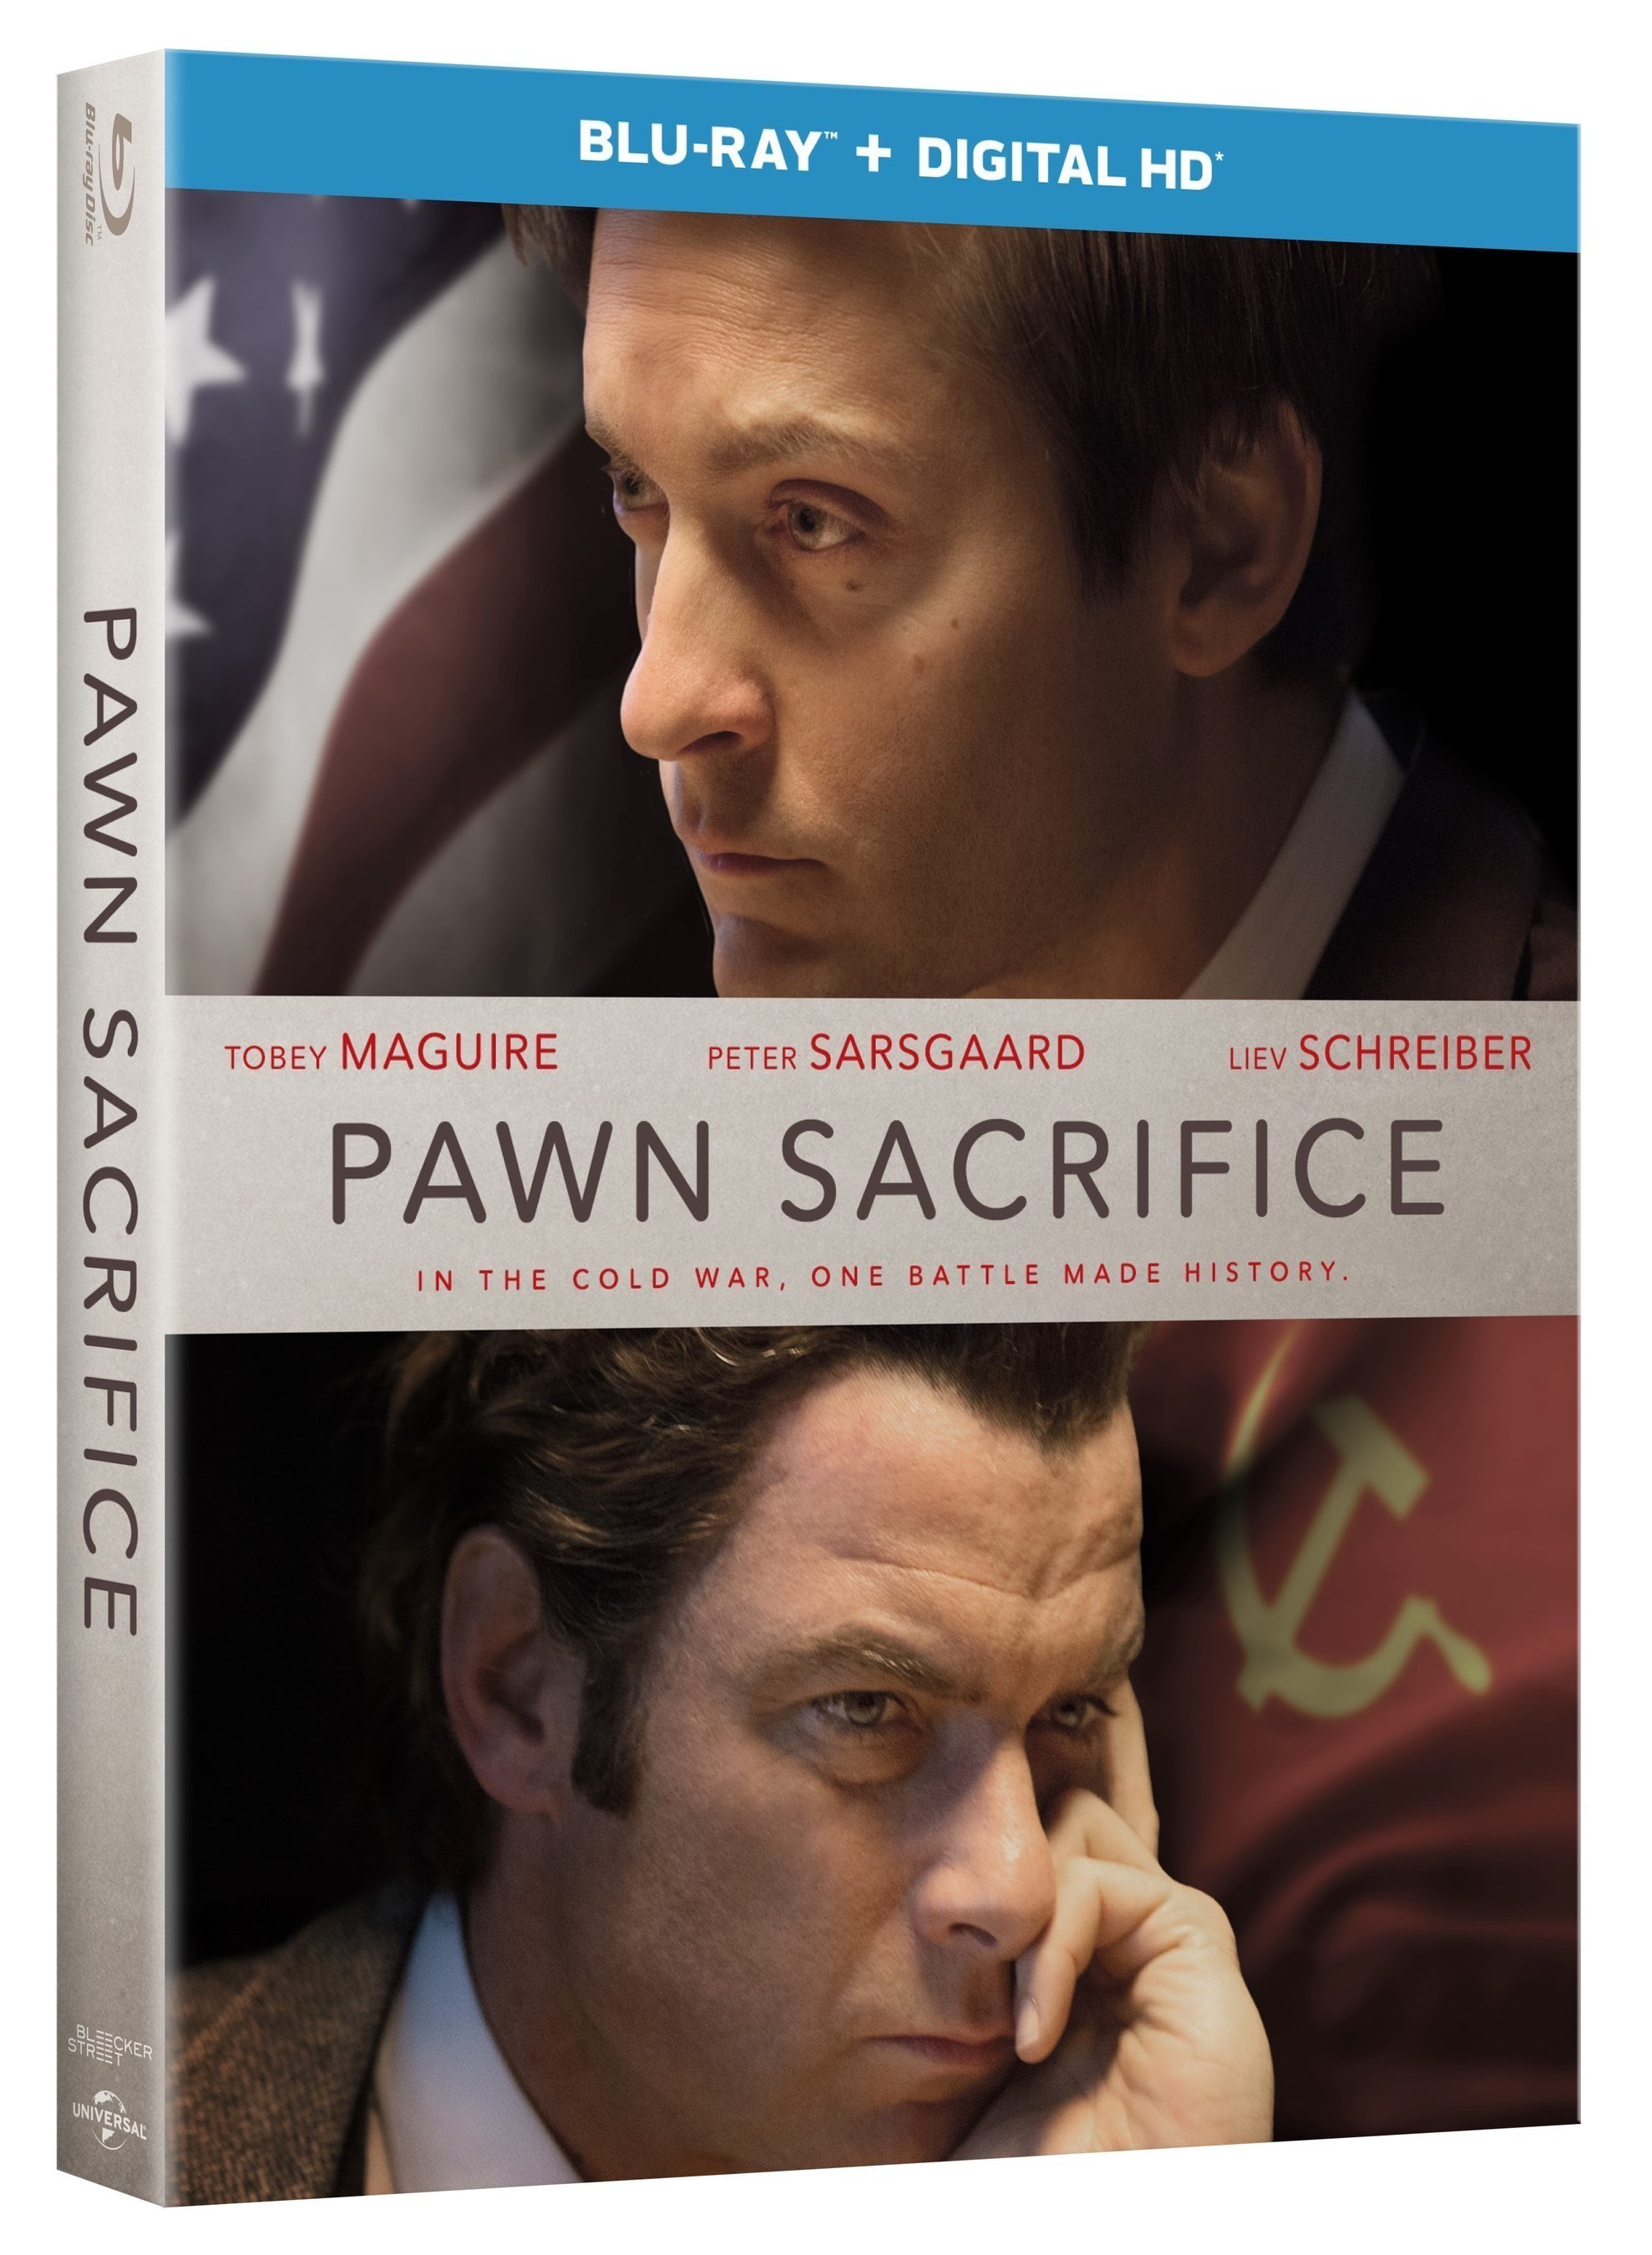 From Universal Pictures Home Entertainment: Pawn Sacrifice